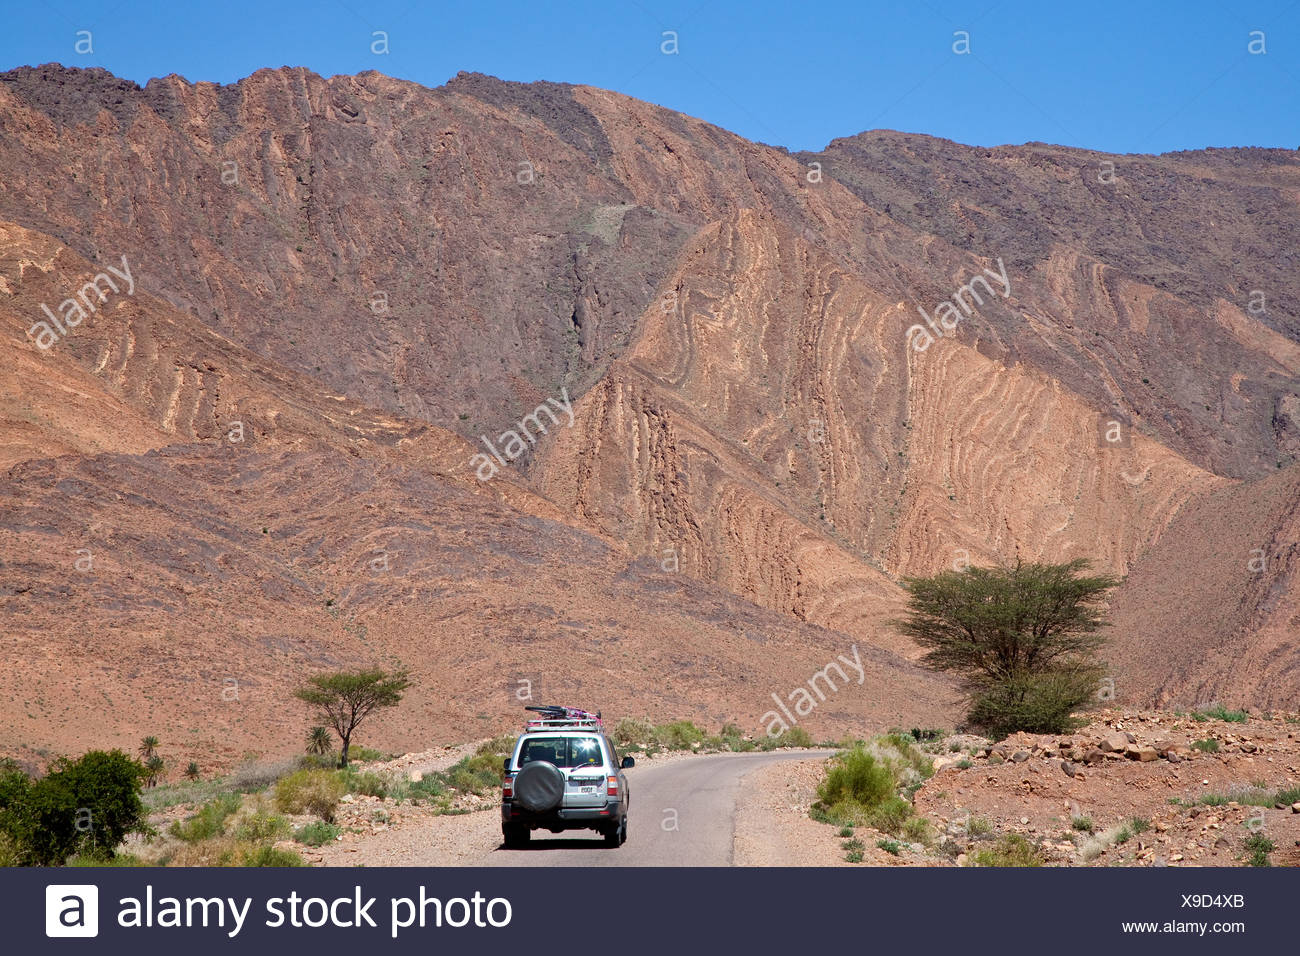 All-terrain vehicle, Toyota Land Cruiser, driving on a road near Foum-Zguid, Morocco, Africa - Stock Image